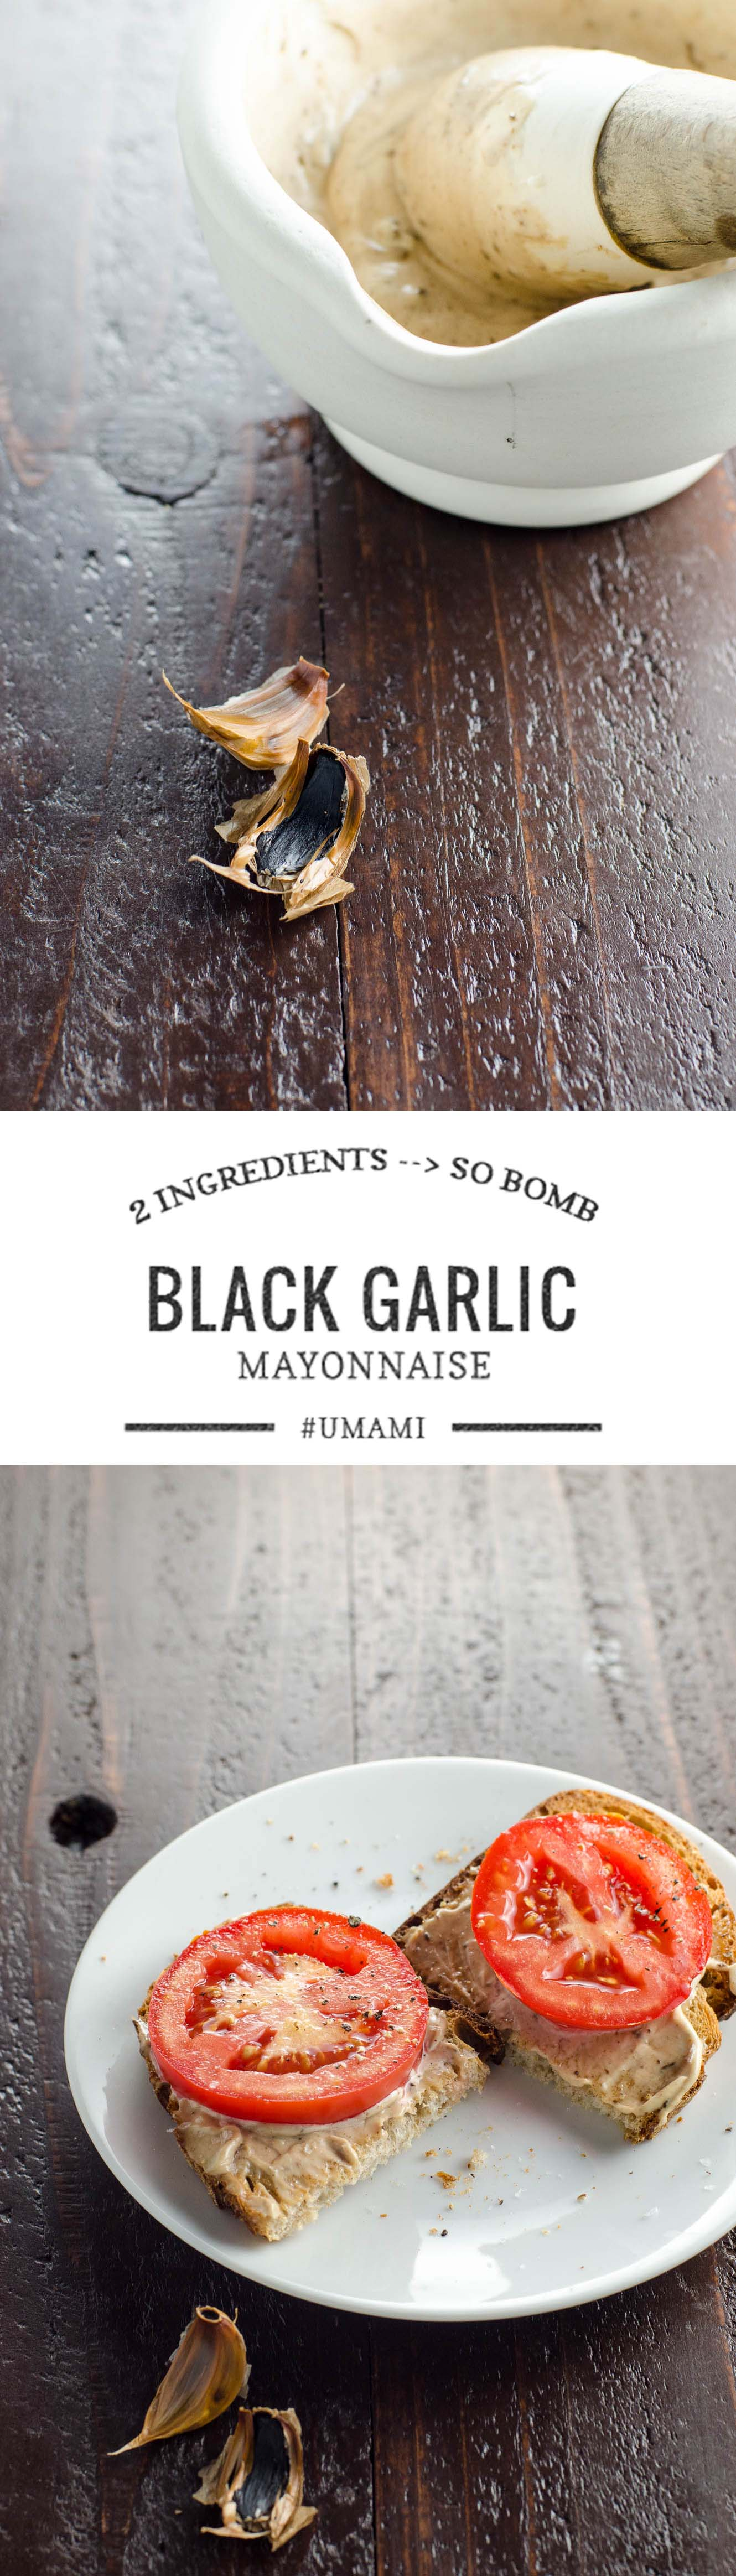 The two-ingredient spread that will change your life. Or at least your sandwich. Black Garlic Mayo.